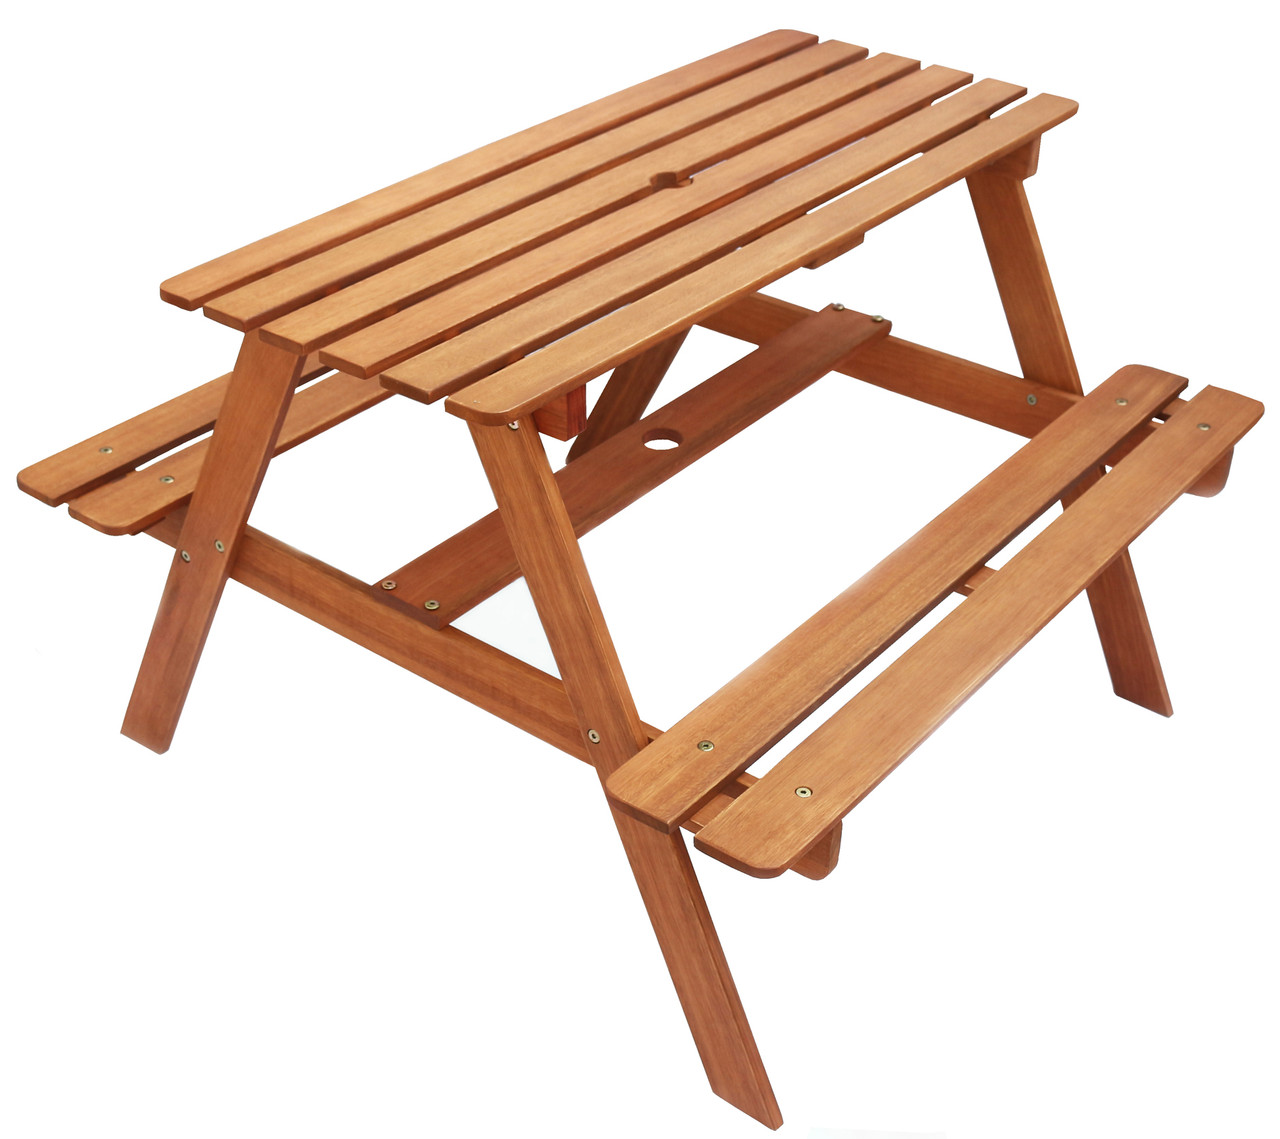 Wooden Kids Picnic Table 20l0018 Toymate 3